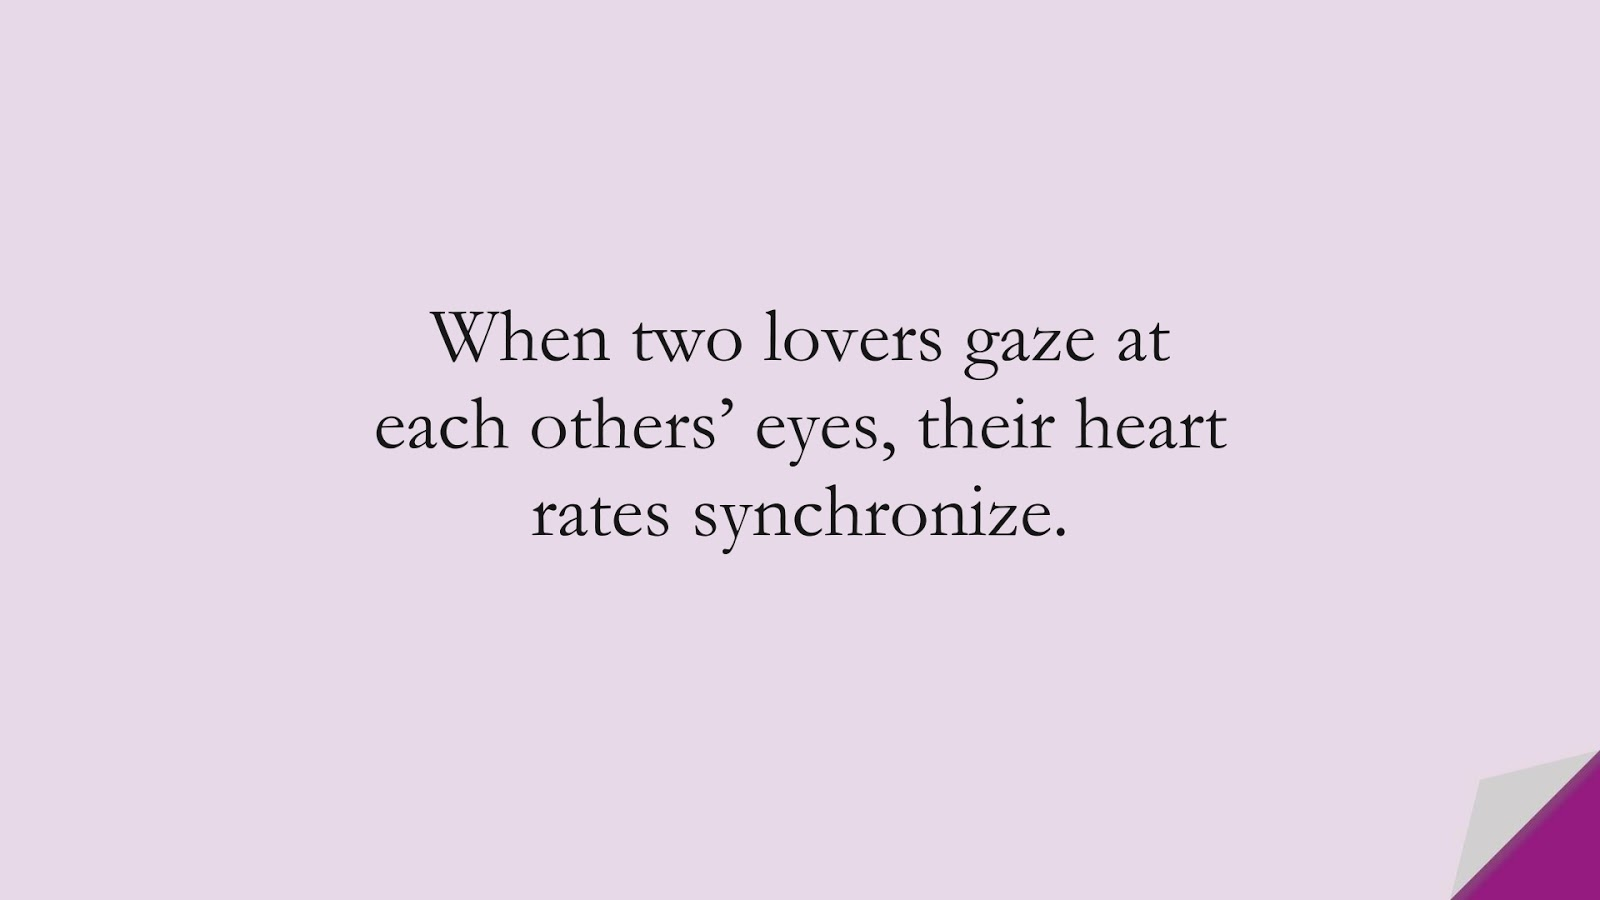 When two lovers gaze at each others' eyes, their heart rates synchronize.FALSE